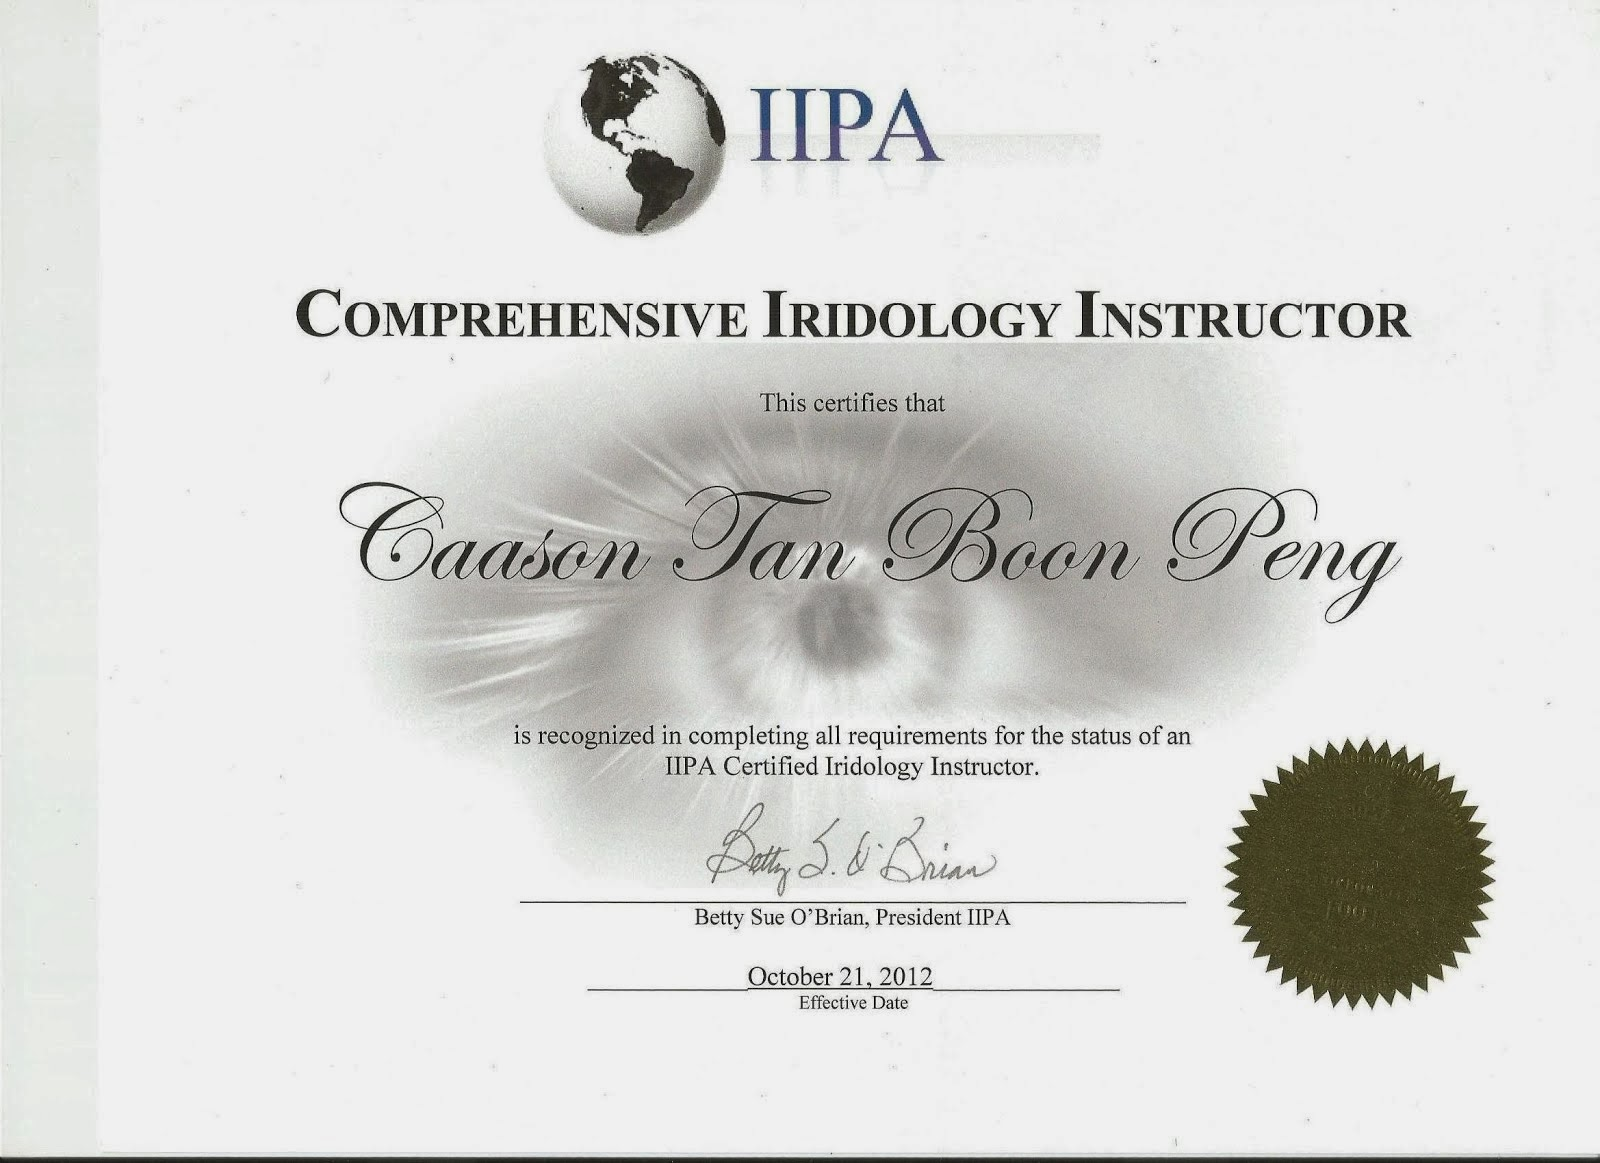 Certified Comprehensive Iridology Instructor - CCII